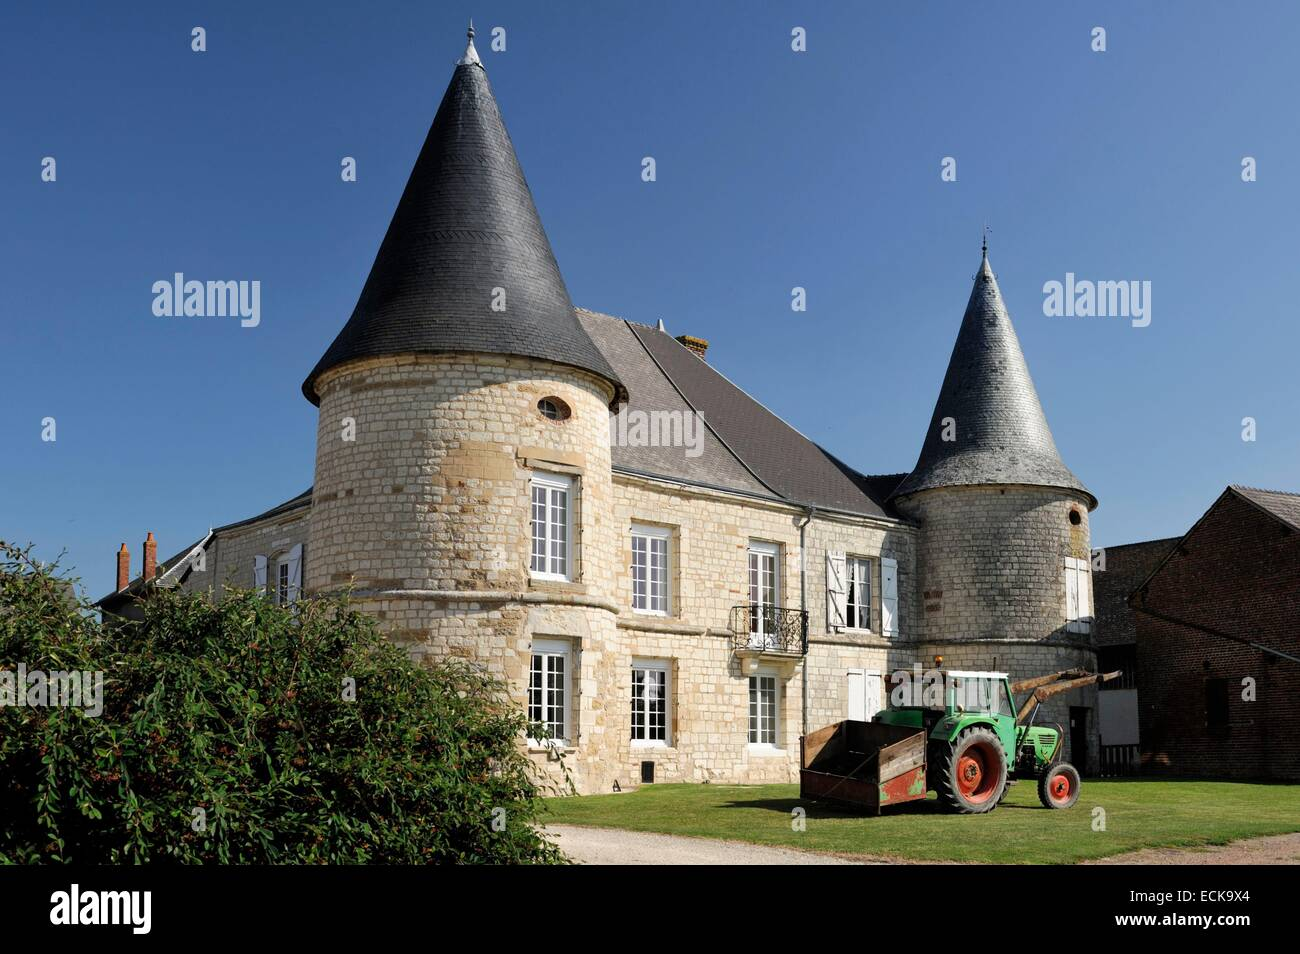 France, Ardennes, Sery, castle, tractor parked in front of the castle - Stock Image